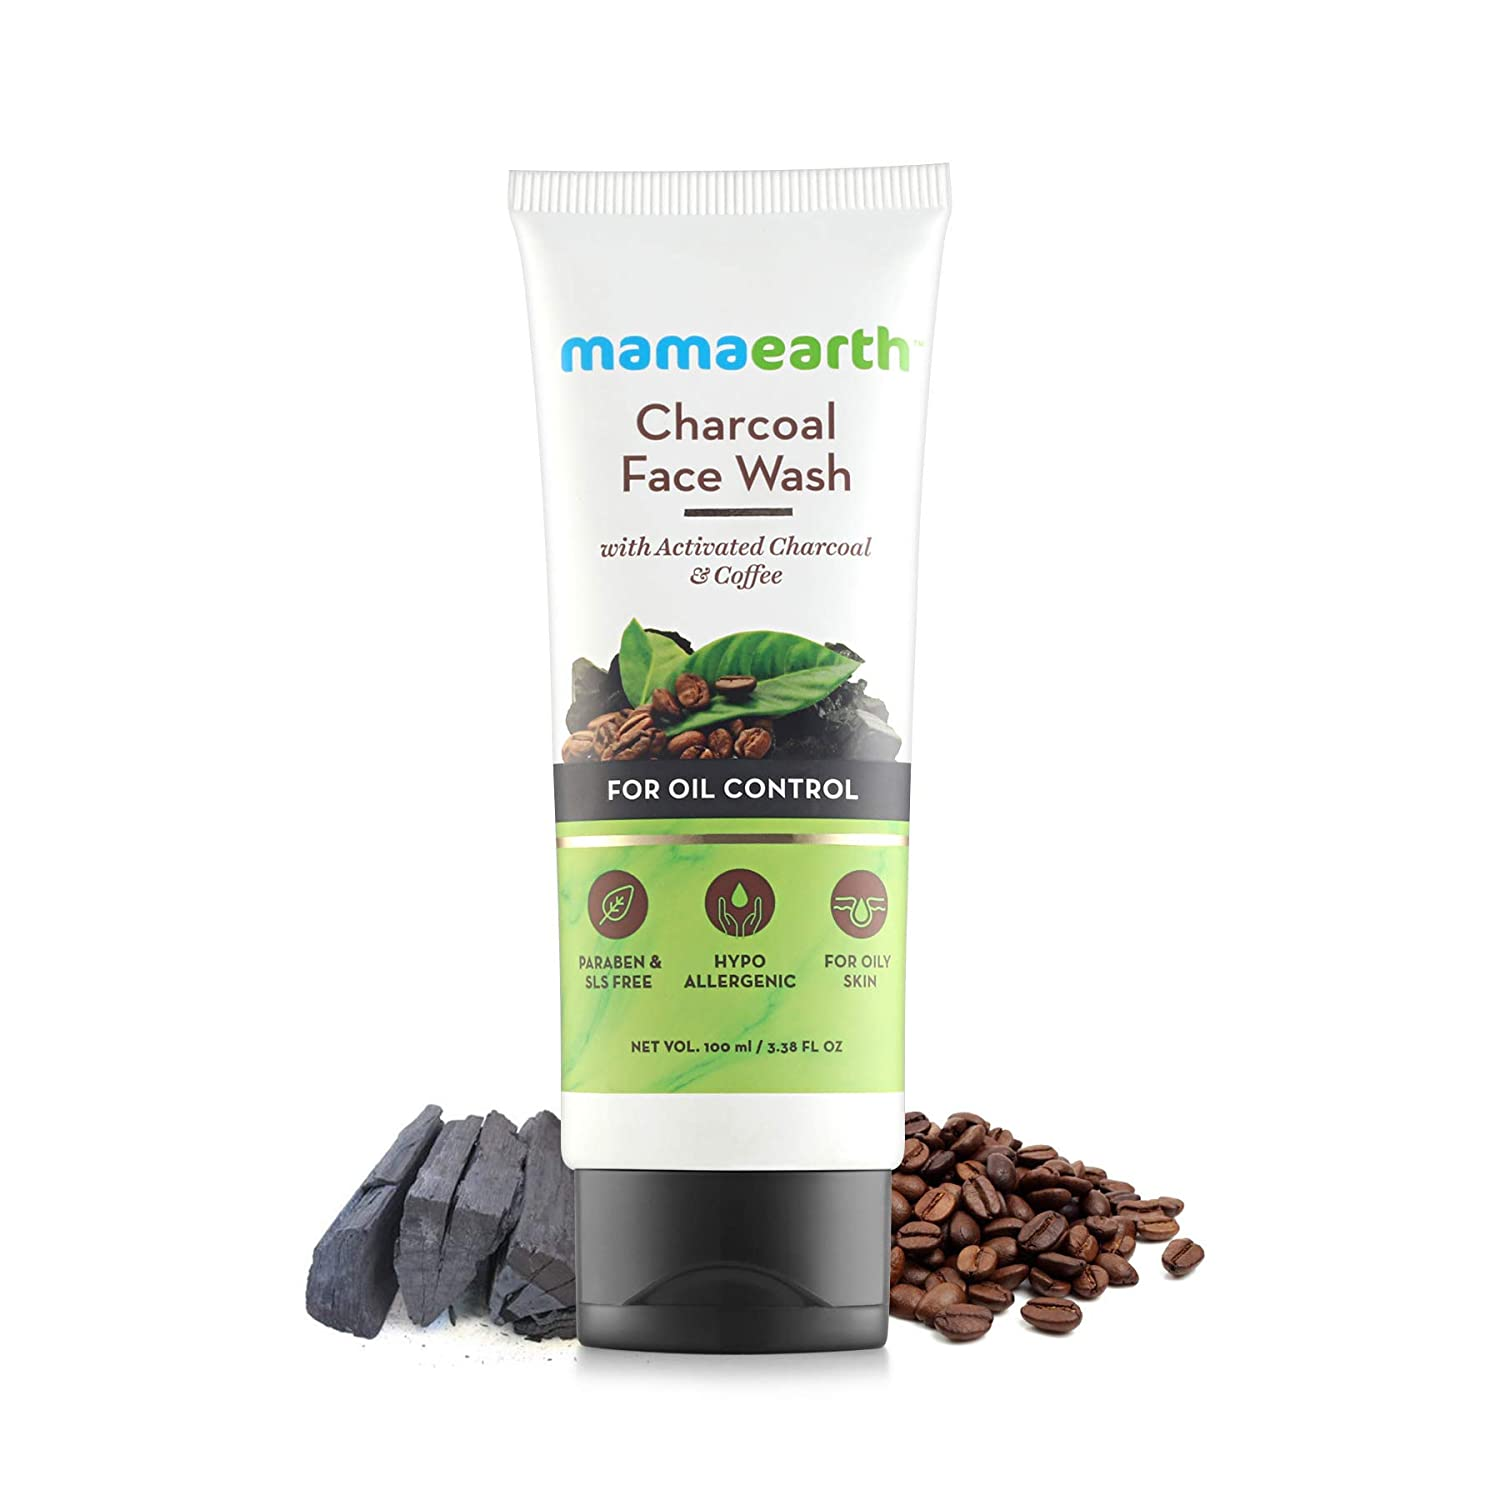 Mamaearth Charcoal Natural Face Wash for oil control and pollution defence - For Oily Skin - SLS & Paraben Free